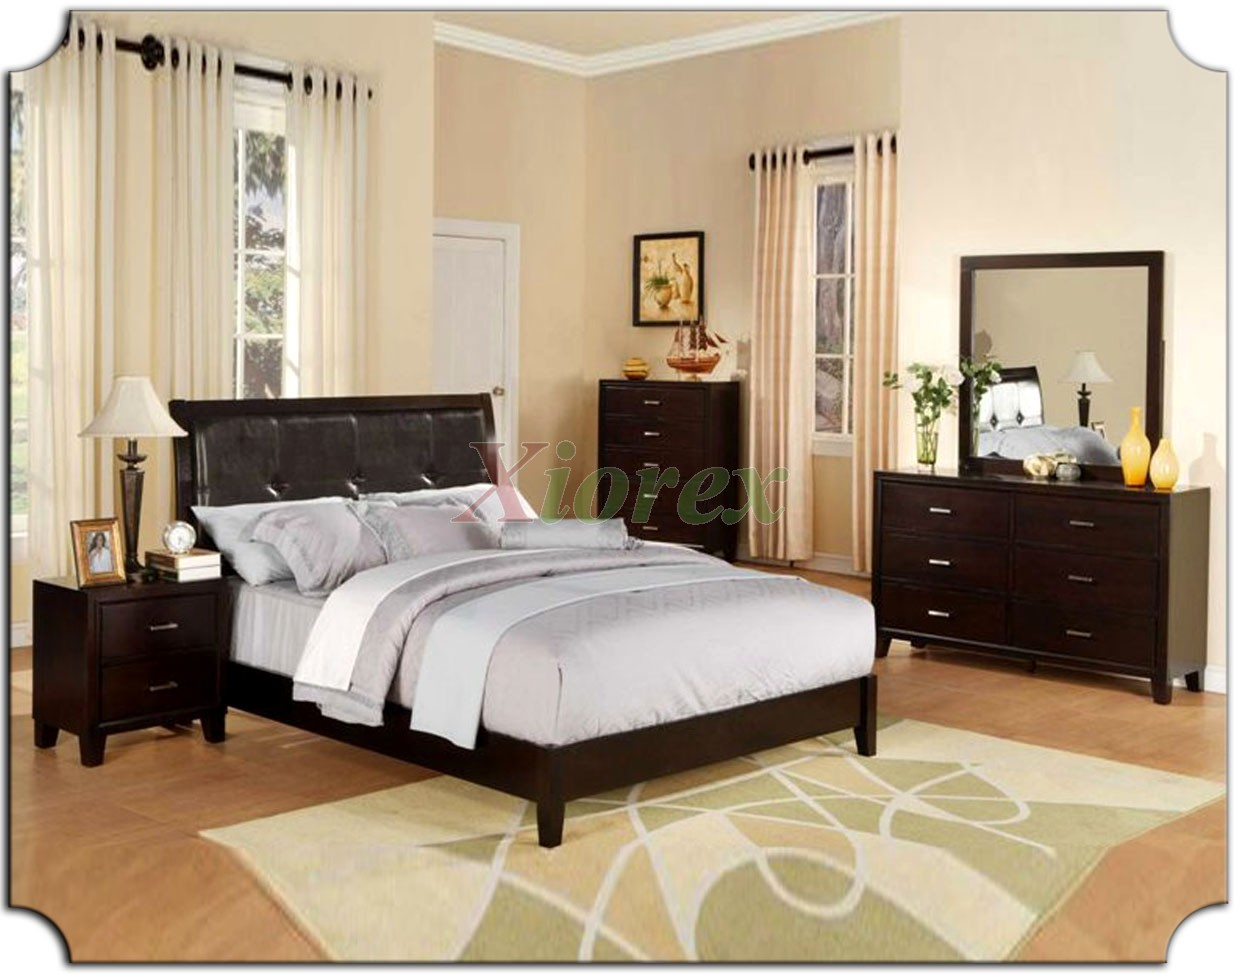 Good Platform Bedroom Furniture Set With Tufted Leather Headboard Beds 166